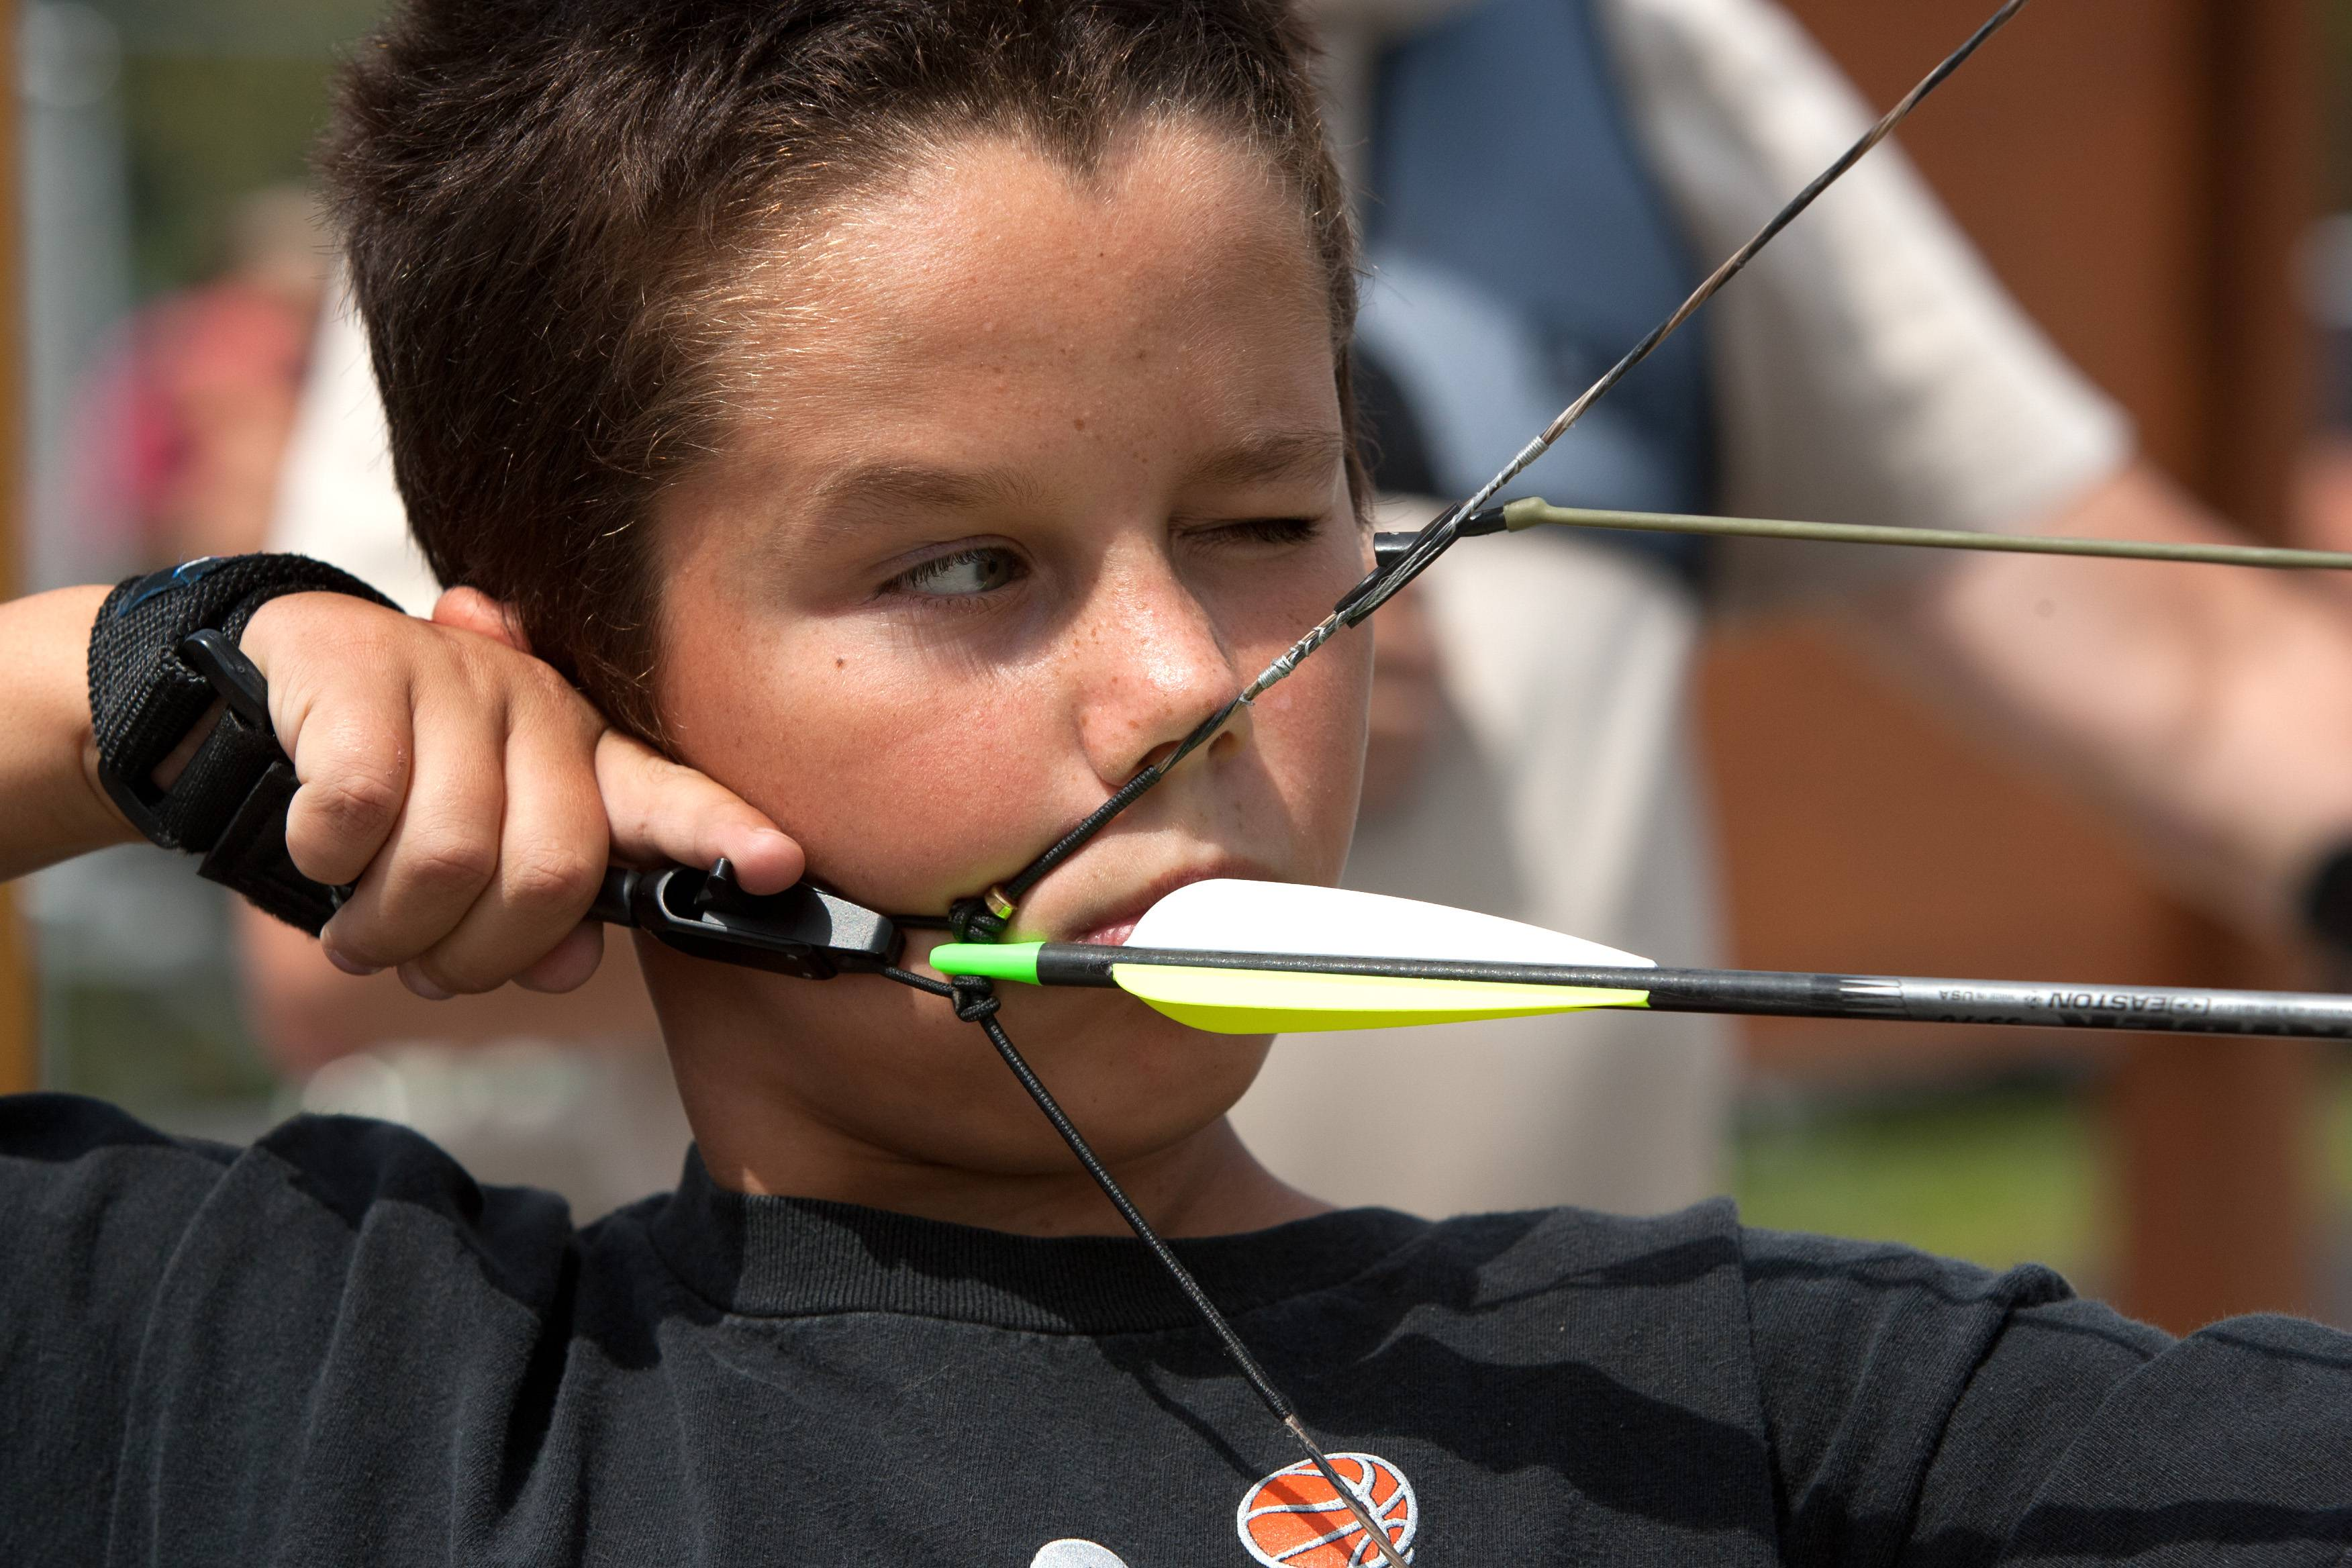 The Forest Preserve District of DuPage County will sponsor a free open house Saturday at its archery range in Blackwell Forest Preserve near Warrenville.